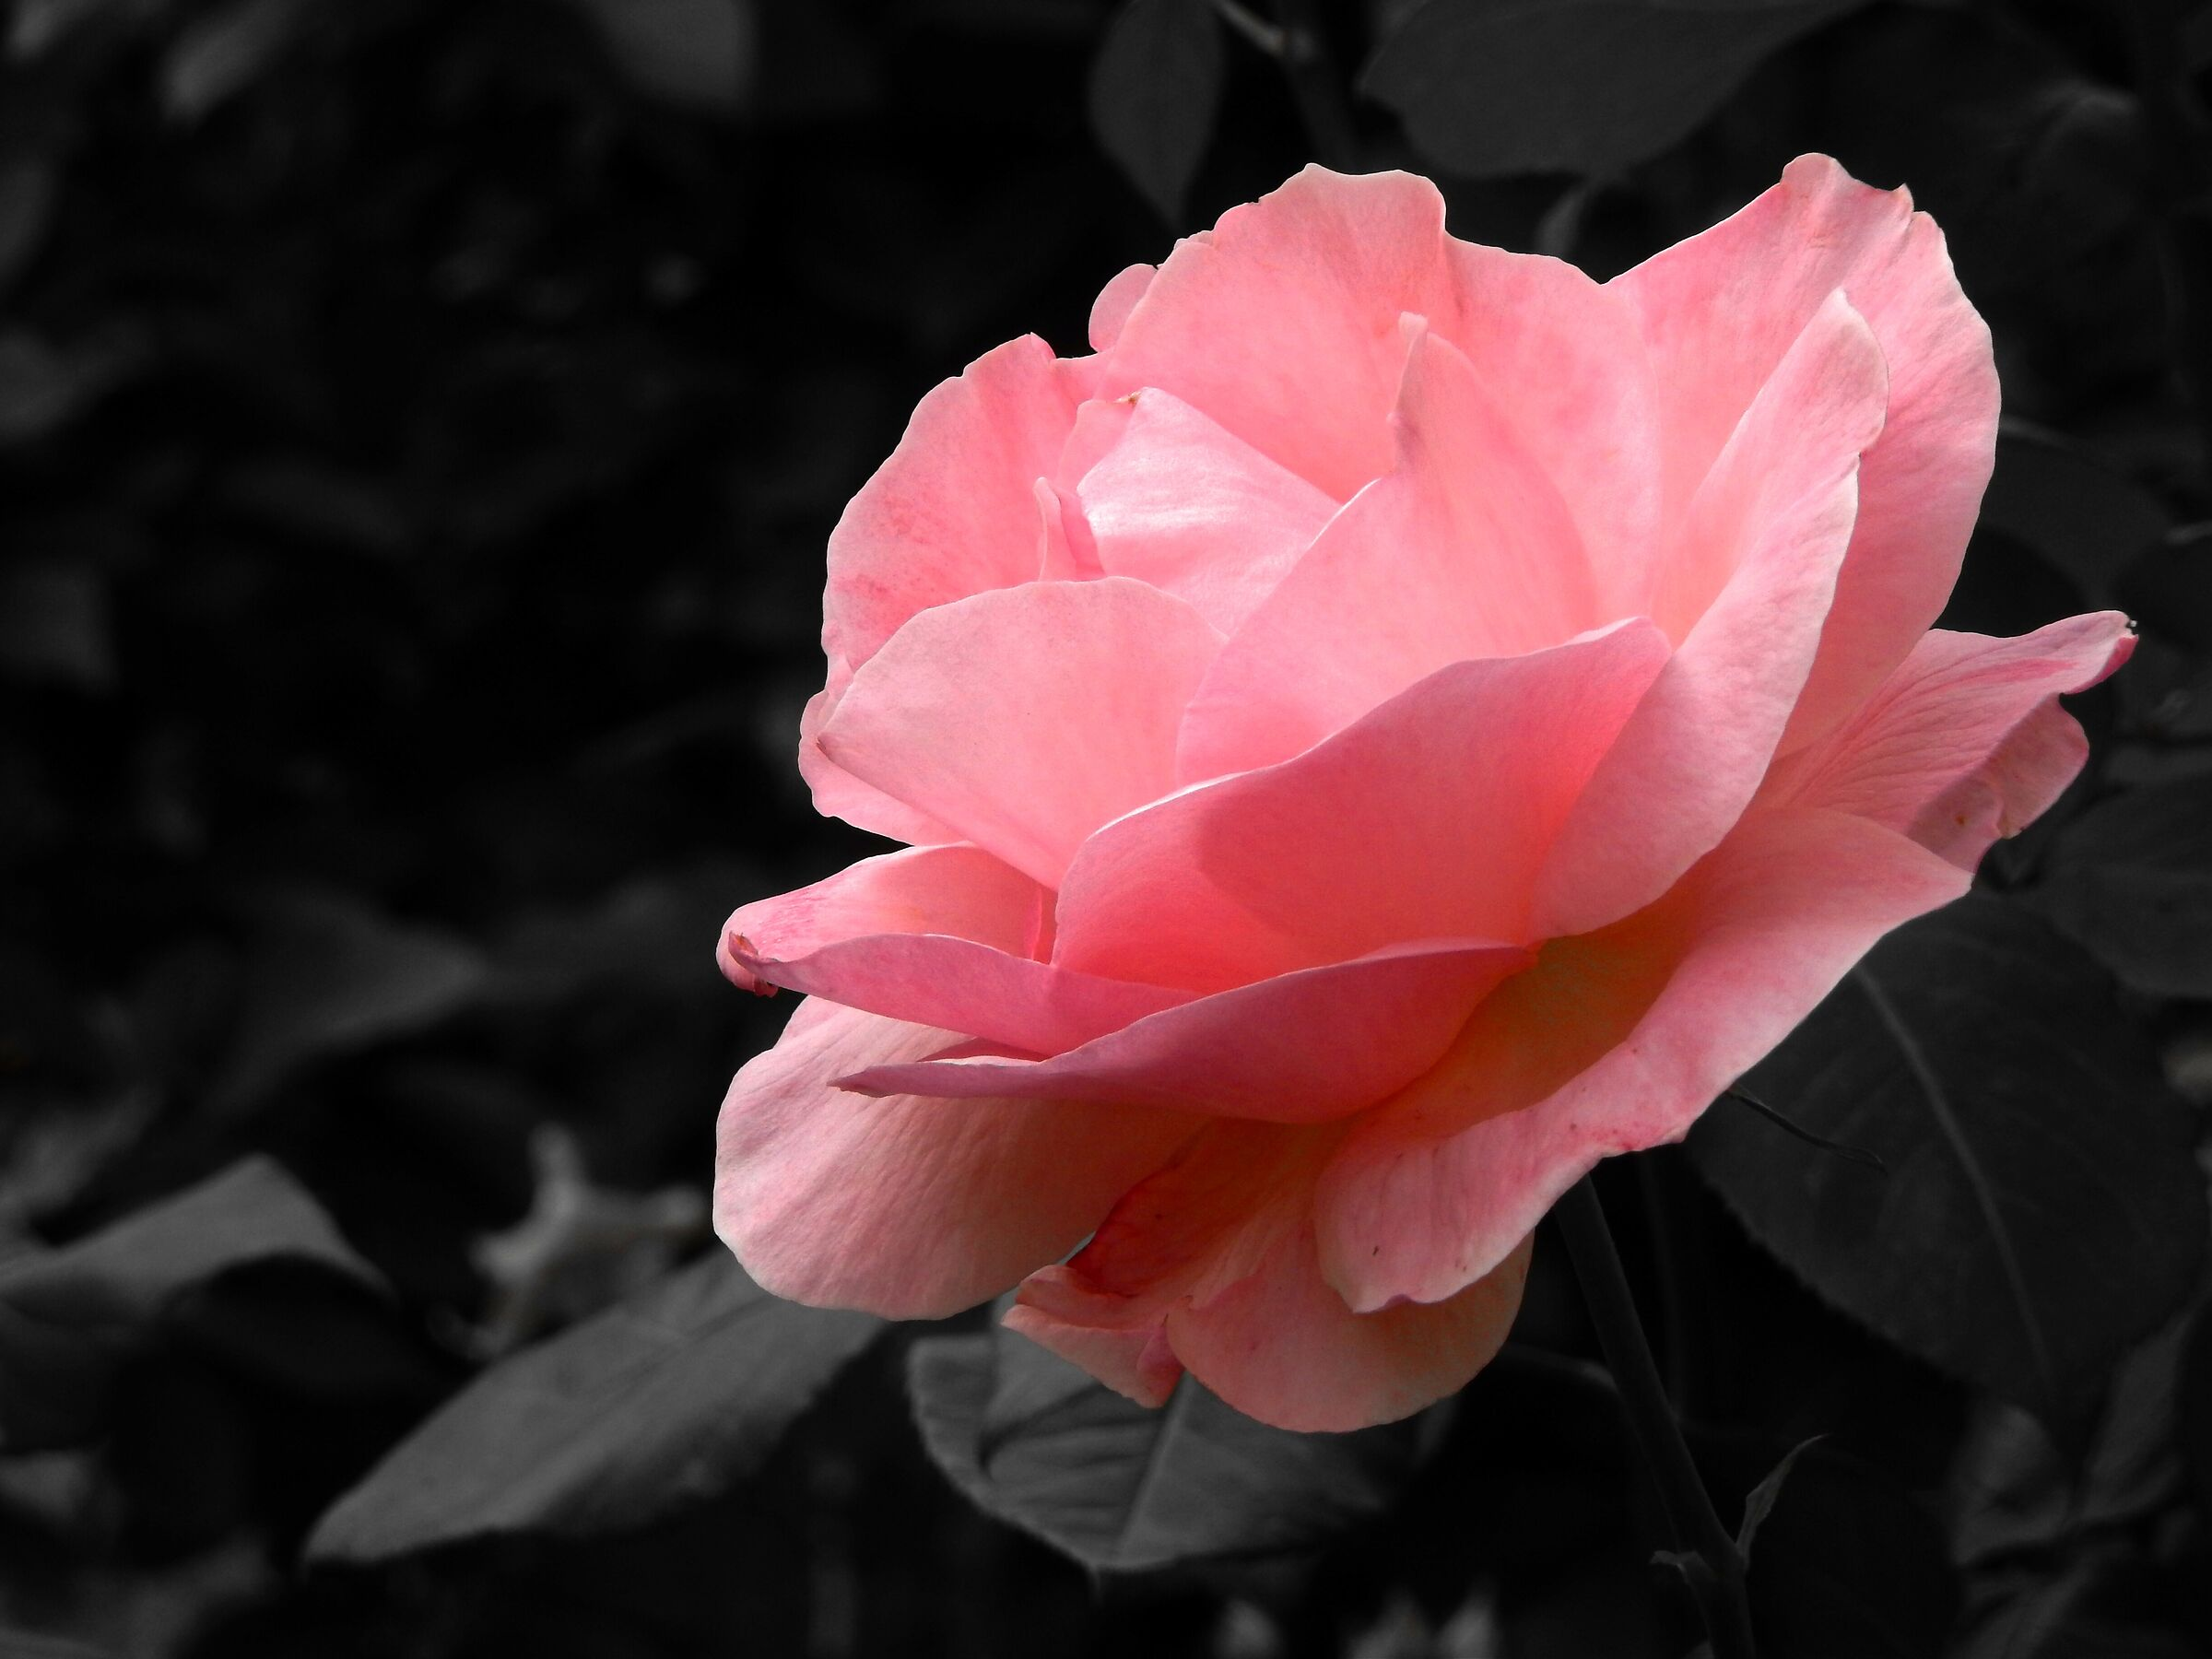 The roses are coming back to bloom......